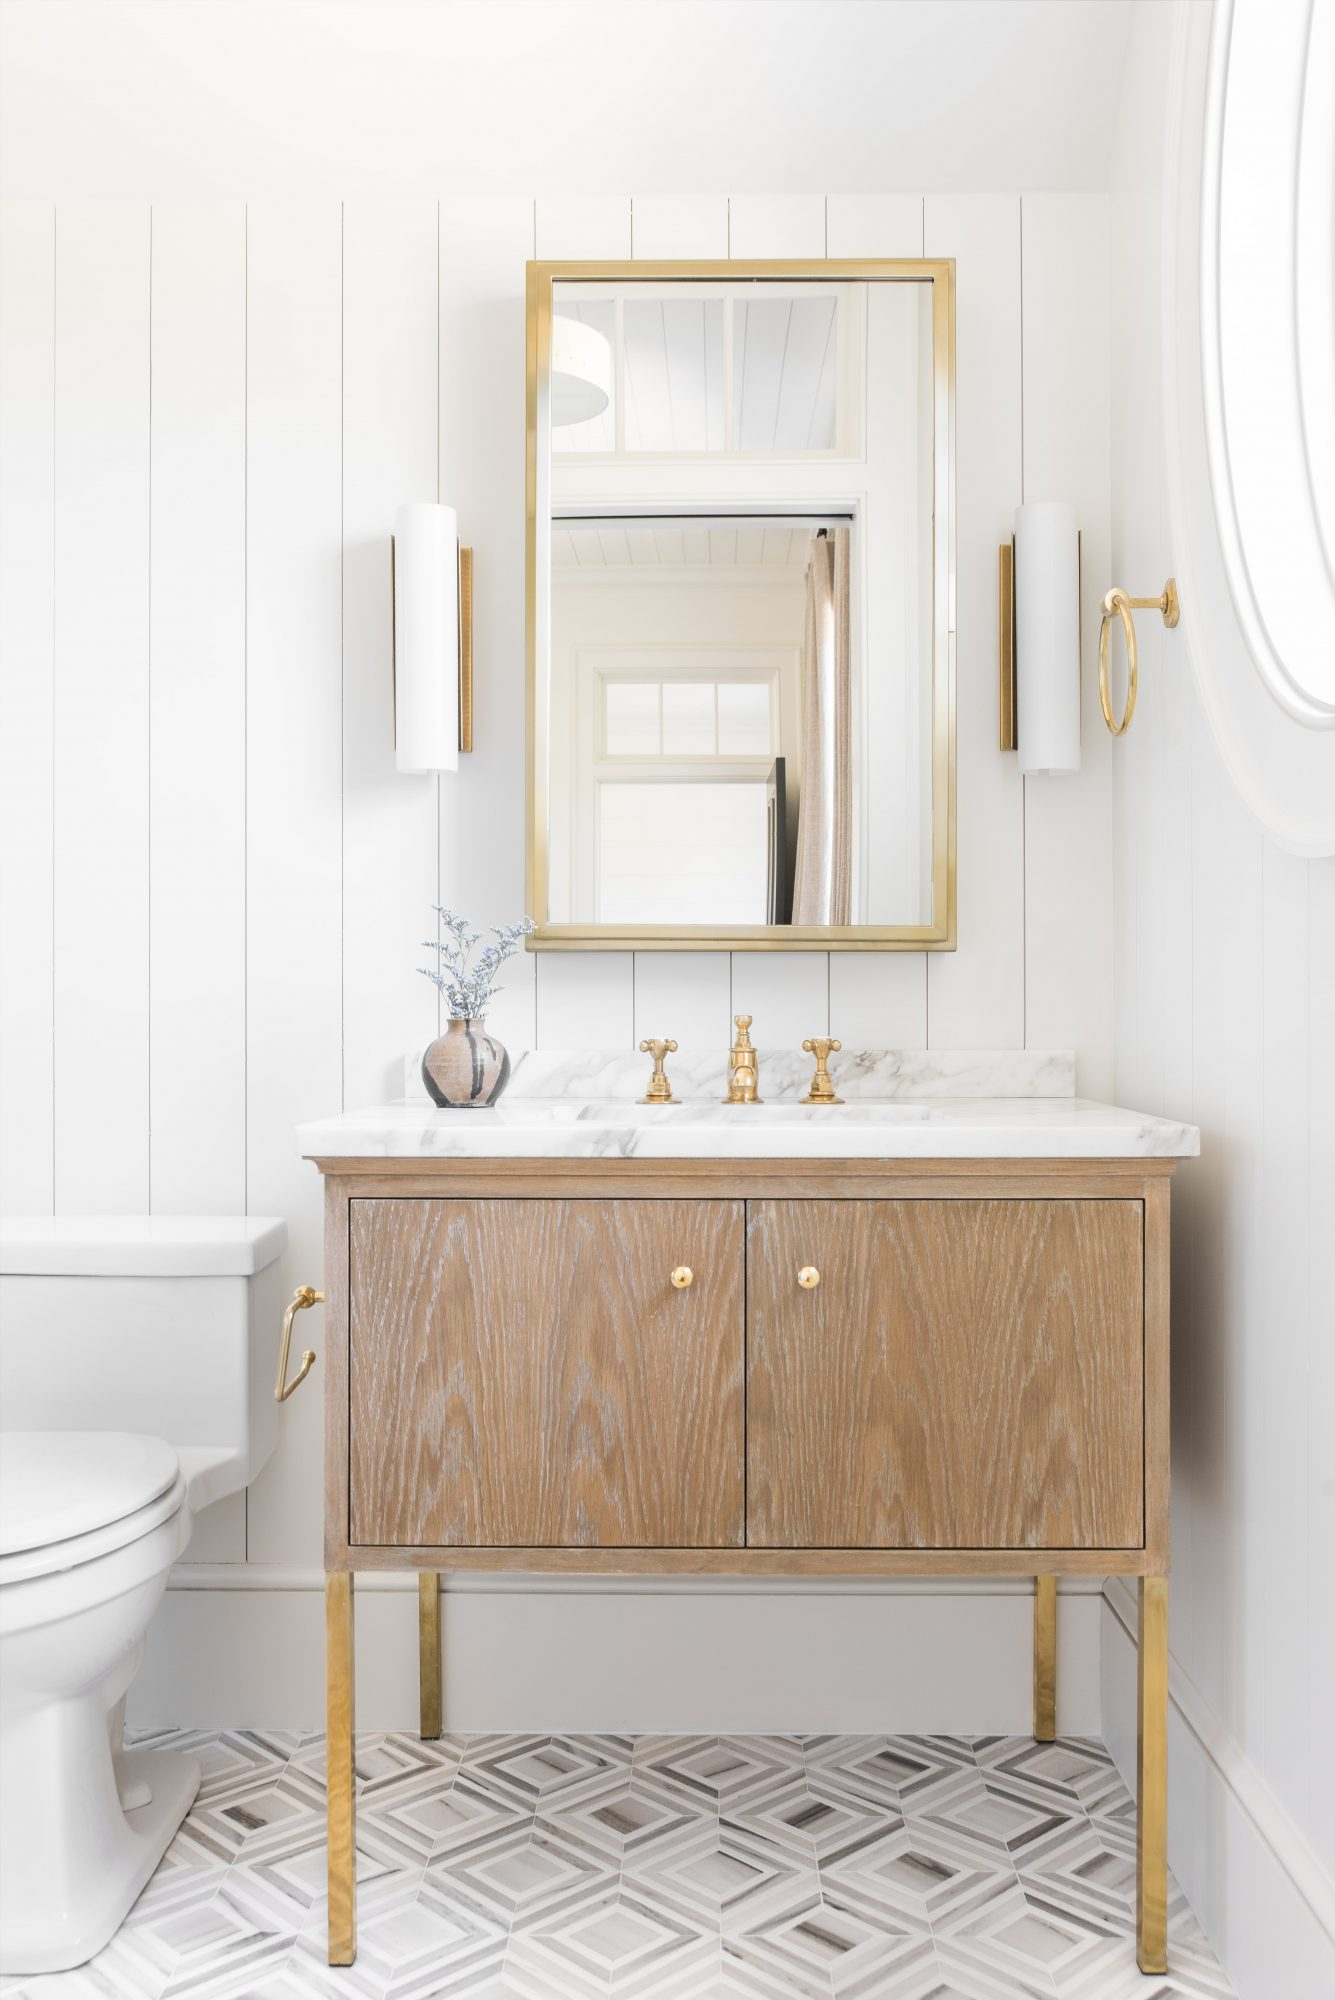 Best Warm White Paint Colors - Benjamin Moore - IMAGE: Design: Cortney Bishop, Photo: Katie Charlotte via MyDomaine feat. paint color 'White Dove' from Benjamin Moore